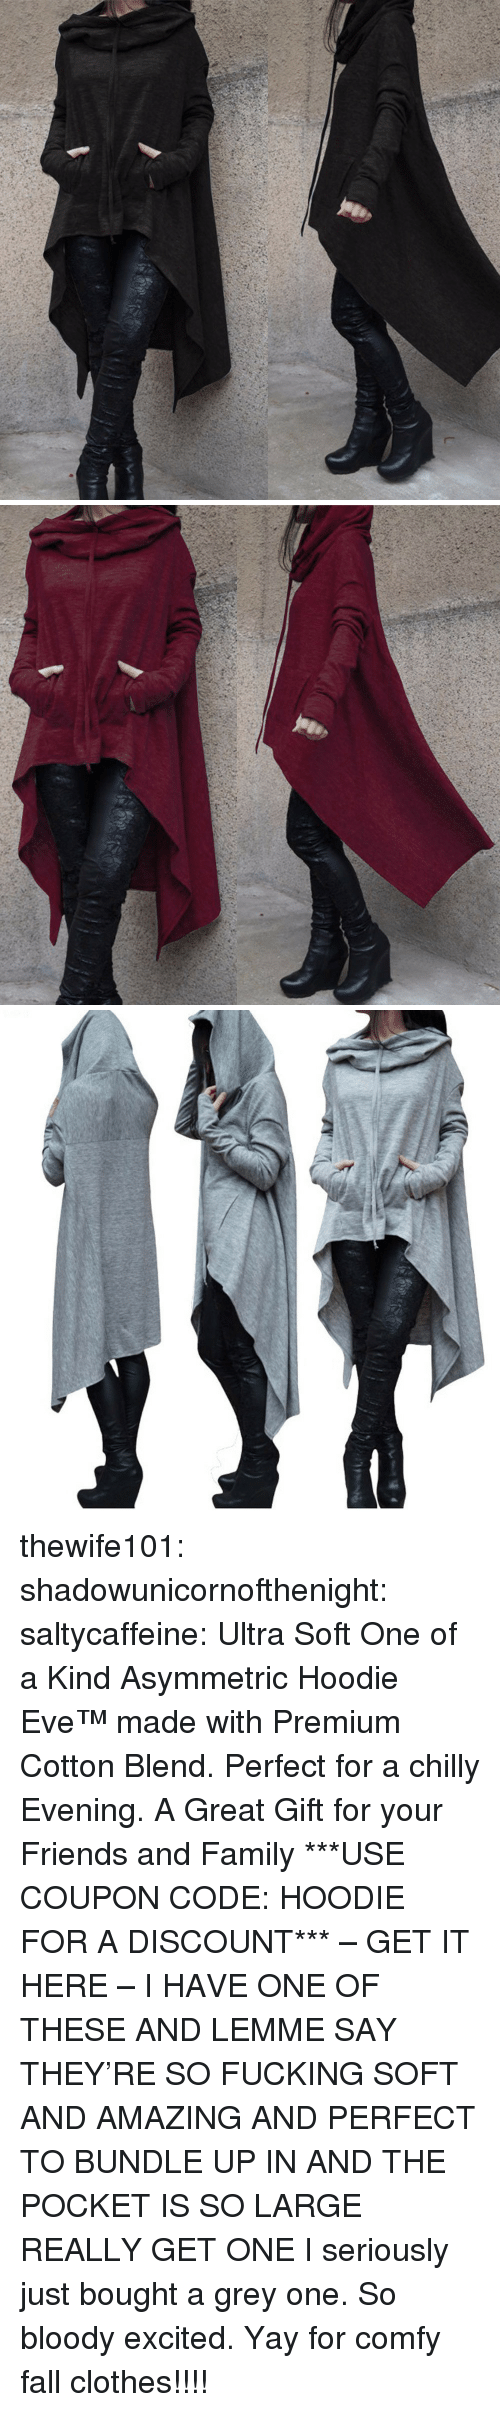 Clothes, Fall, and Family: thewife101:  shadowunicornofthenight:  saltycaffeine:  Ultra Soft One of a Kind Asymmetric Hoodie Eve™made with Premium Cotton Blend. Perfect for a chilly Evening. A Great Gift for your Friends and Family ***USE COUPON CODE: HOODIE FOR A DISCOUNT*** – GET IT HERE –   I HAVE ONE OF THESE AND LEMME SAY THEY'RE SO FUCKING SOFT AND AMAZING AND PERFECT TO BUNDLE UP IN AND THE POCKET IS SO LARGE REALLY GET ONE   I seriously just bought a grey one. So bloody excited. Yay for comfy fall clothes!!!!